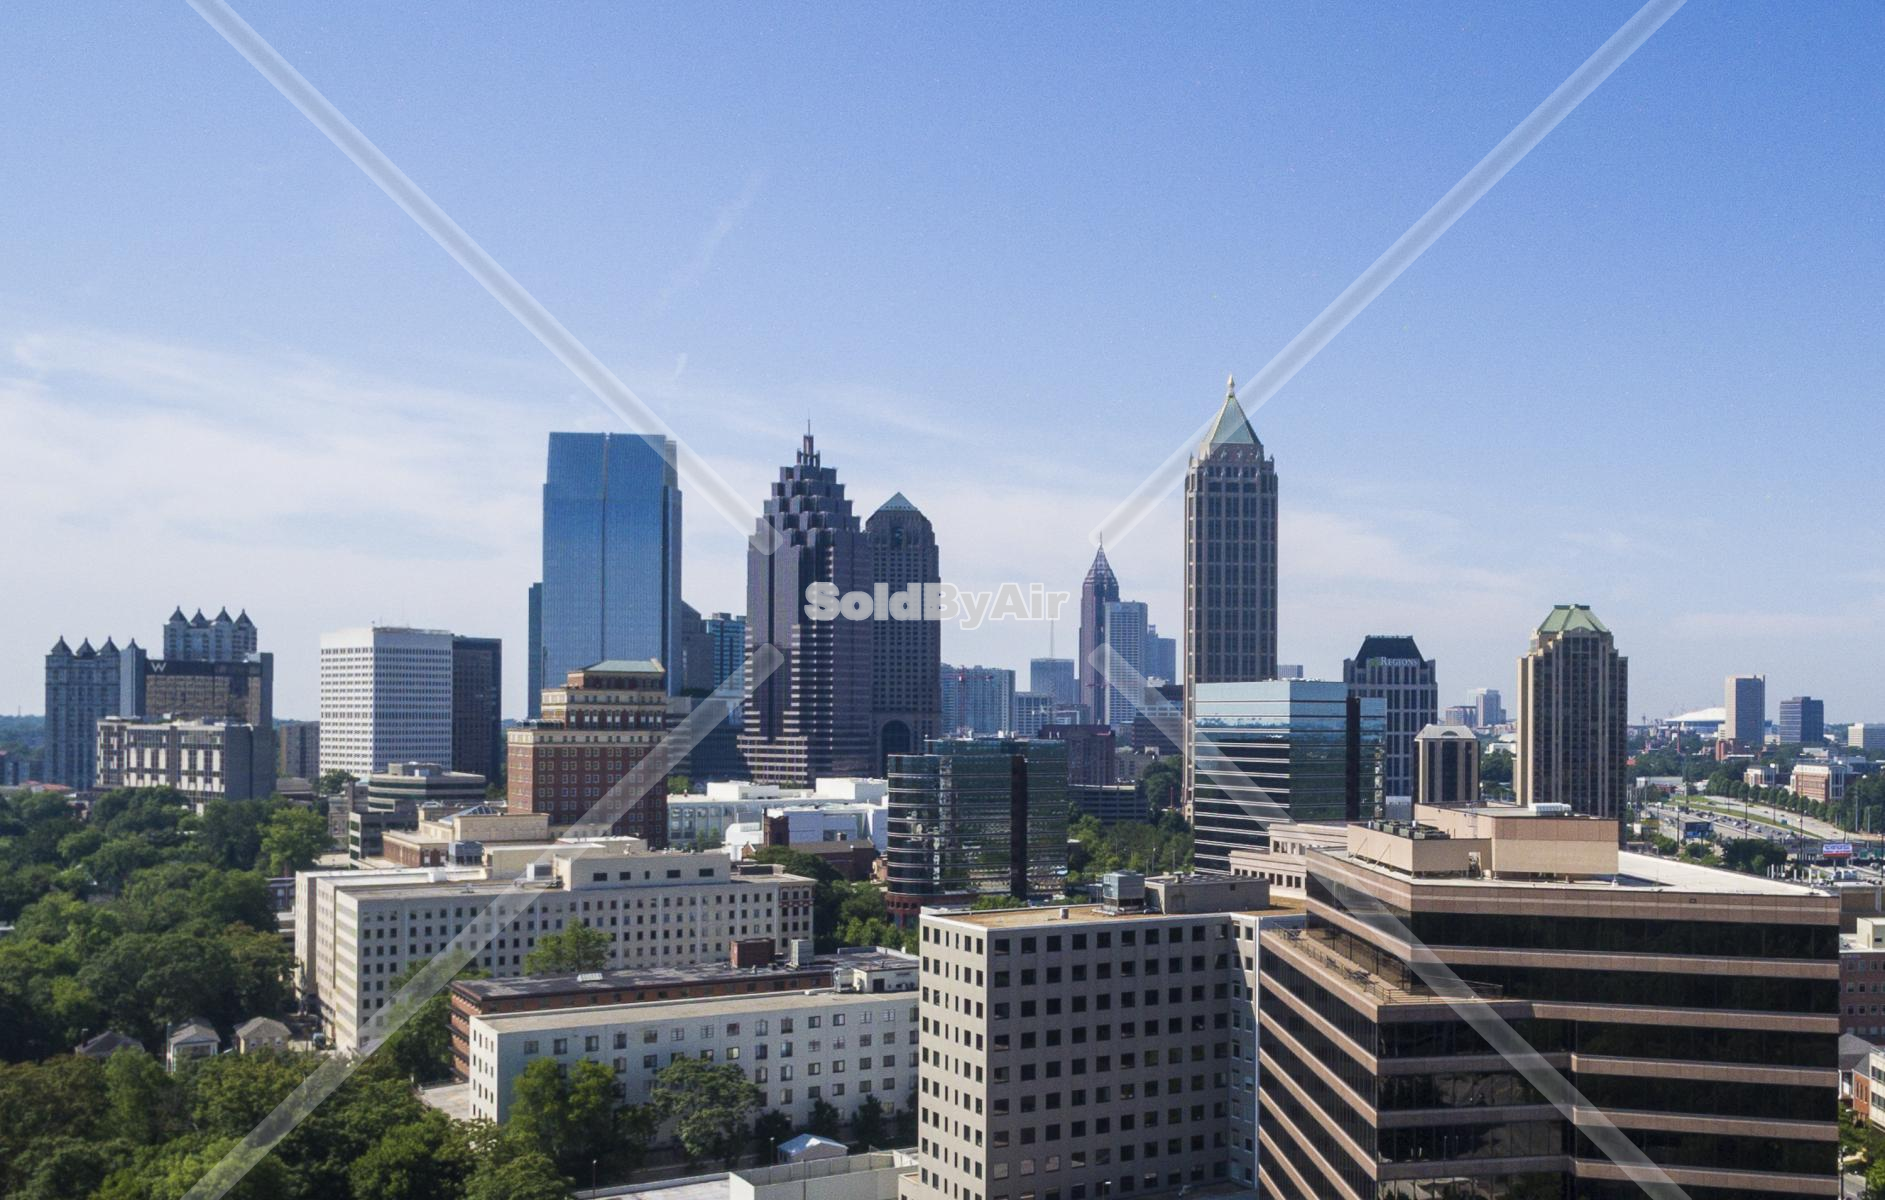 Drone Photo of Midtown, Atlanta, GA, United States in Atlanta Georgia